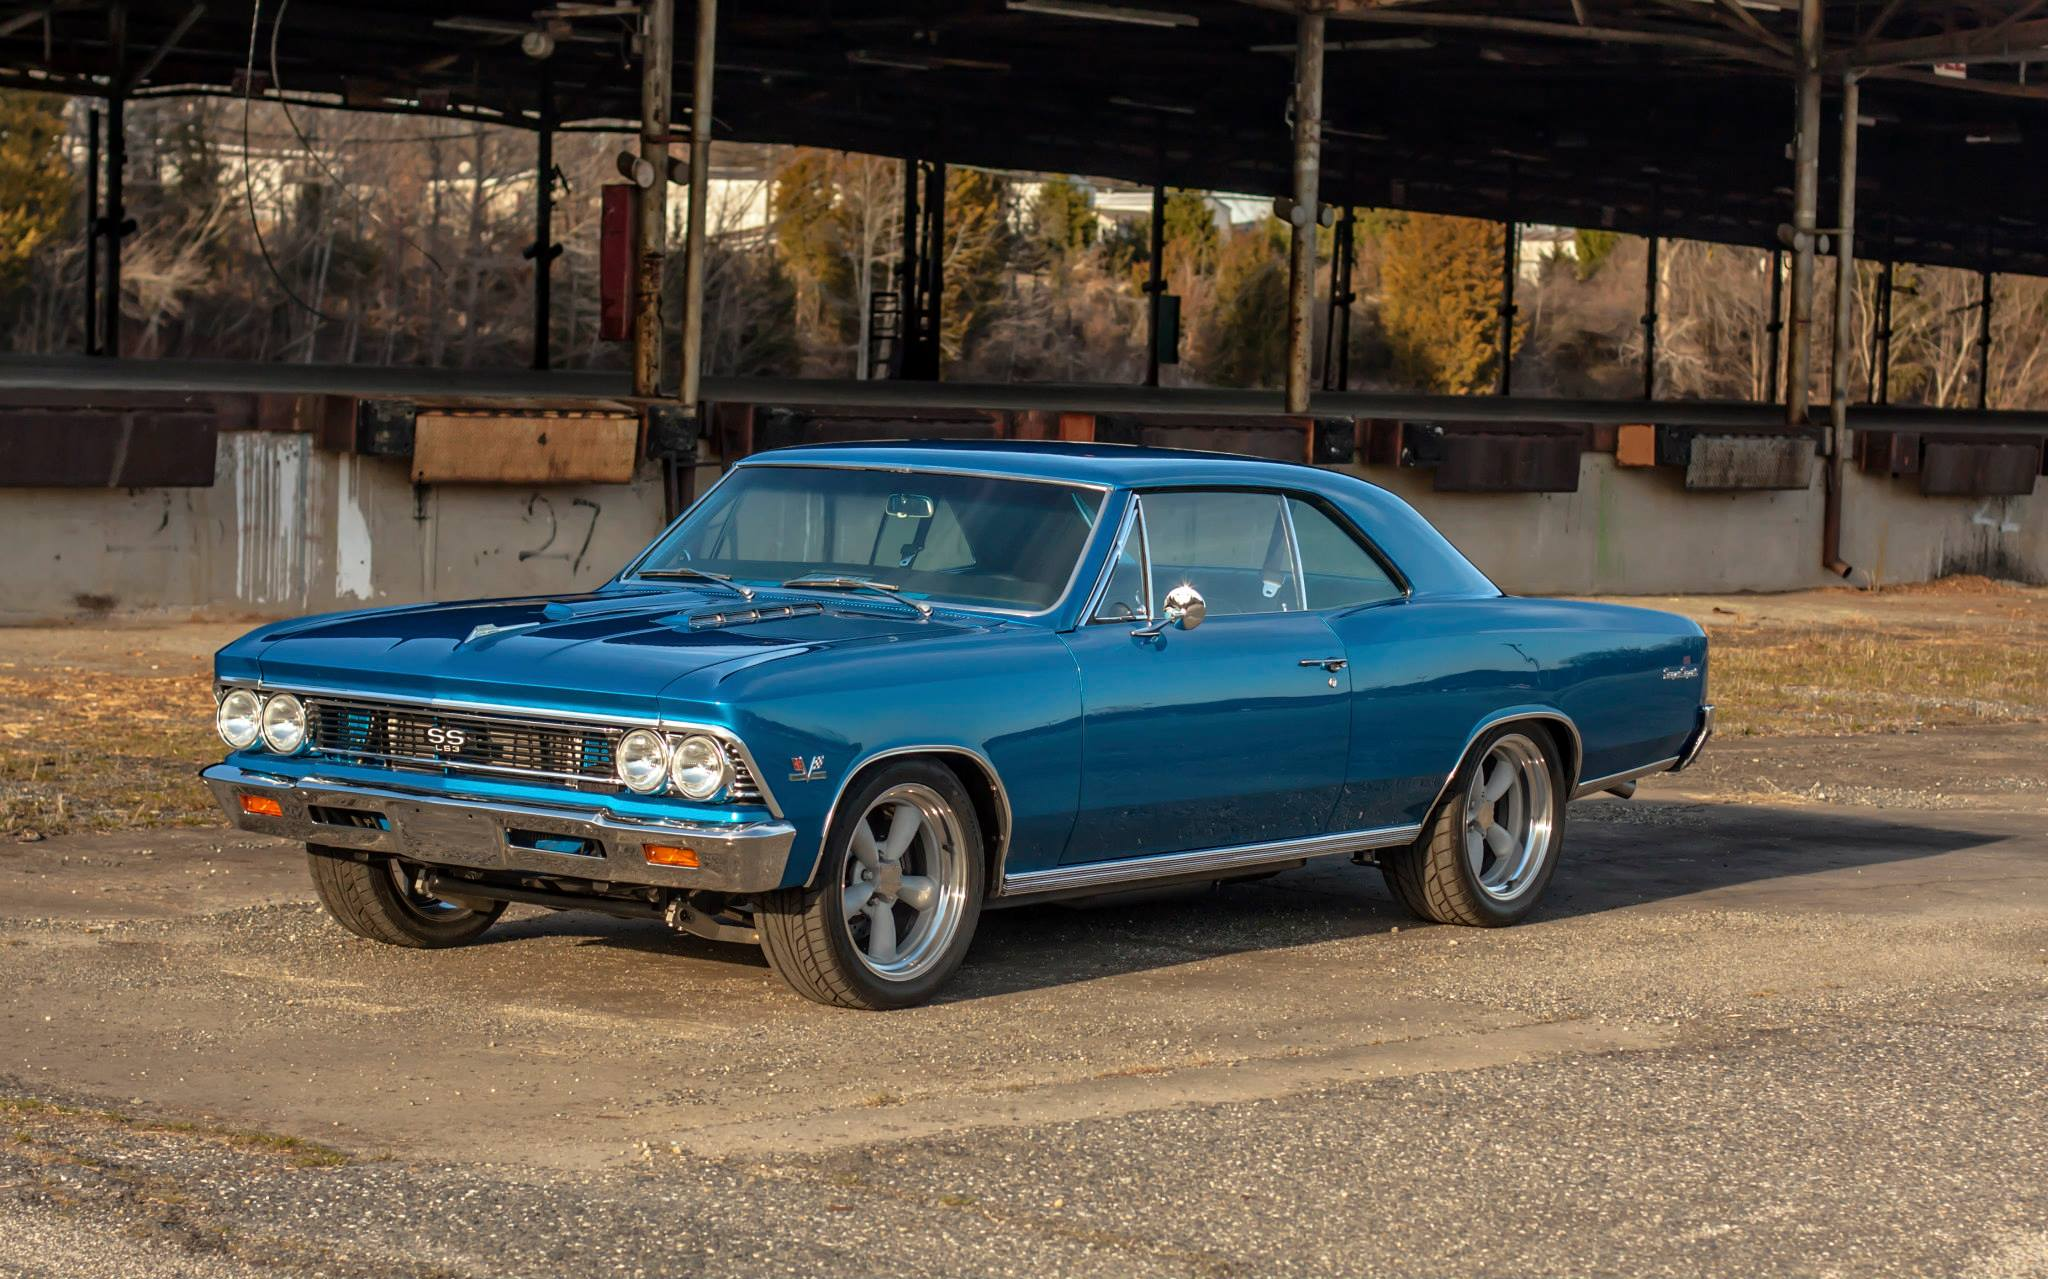 1966 Chevelle  - This car features a Full frame from Schwartz Performance, LS3, Coil overs and big brakes.